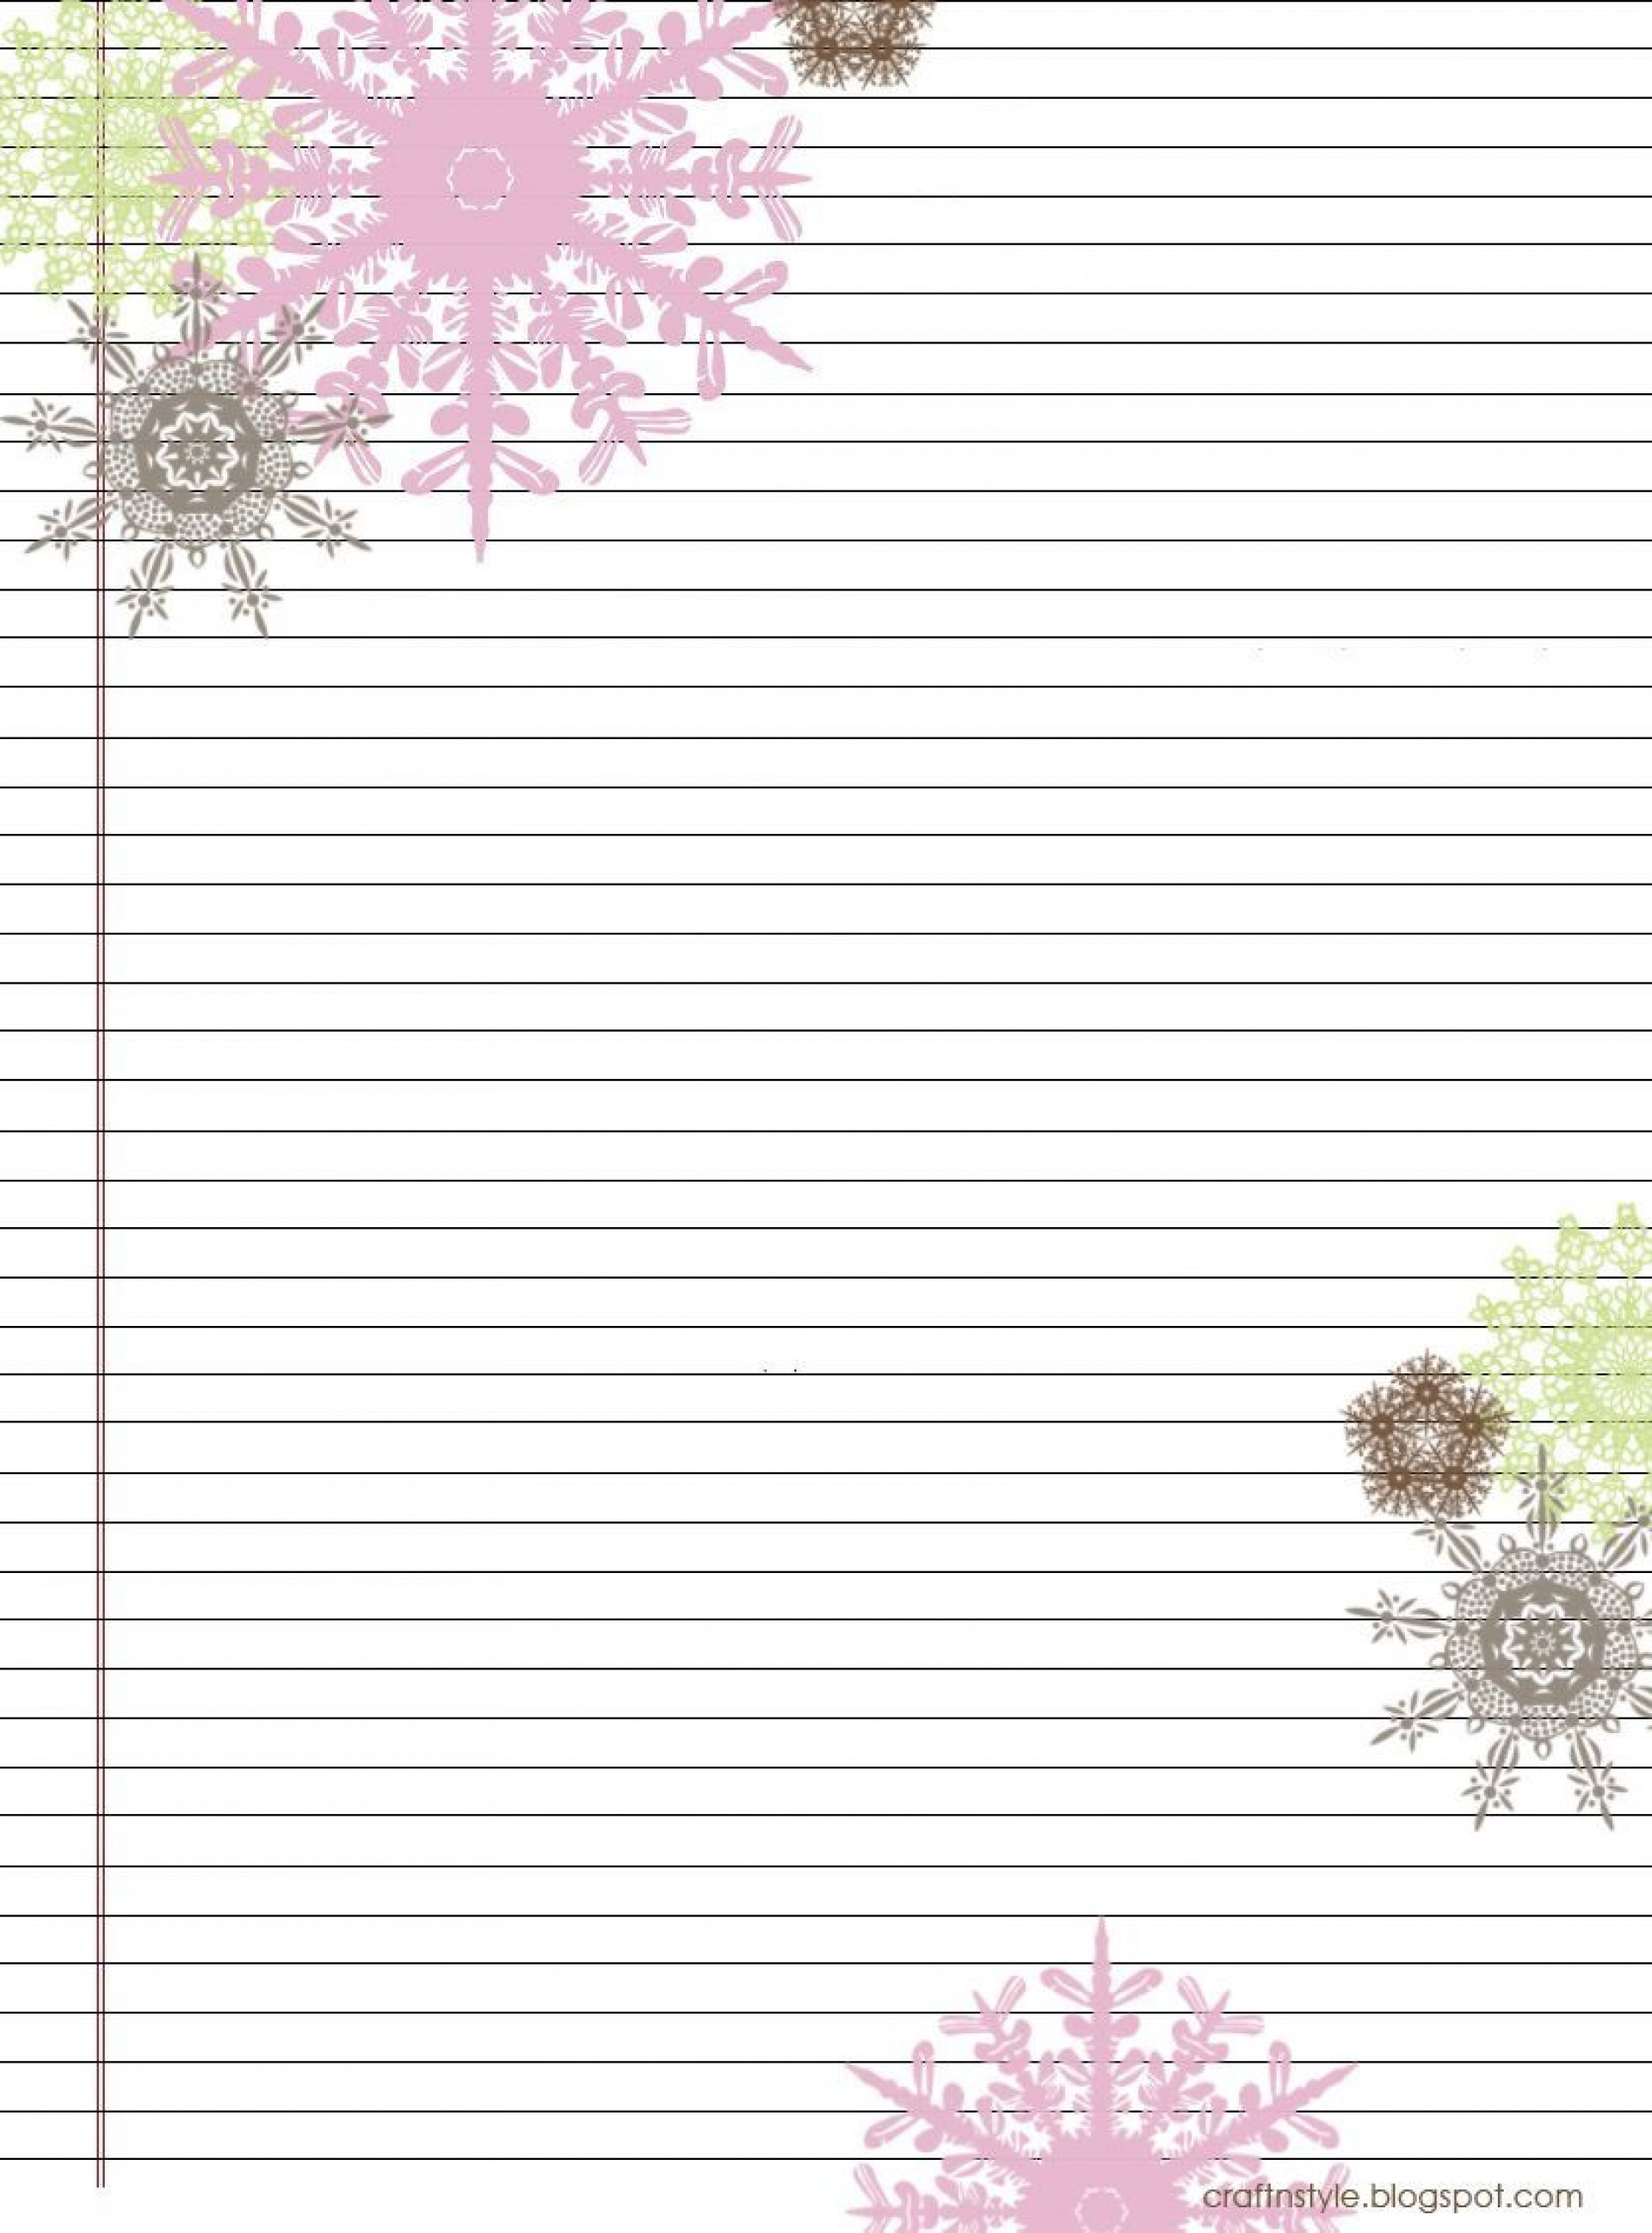 004 Stirring Free Printable Stationery Paper Template Inspiration  Templates1920